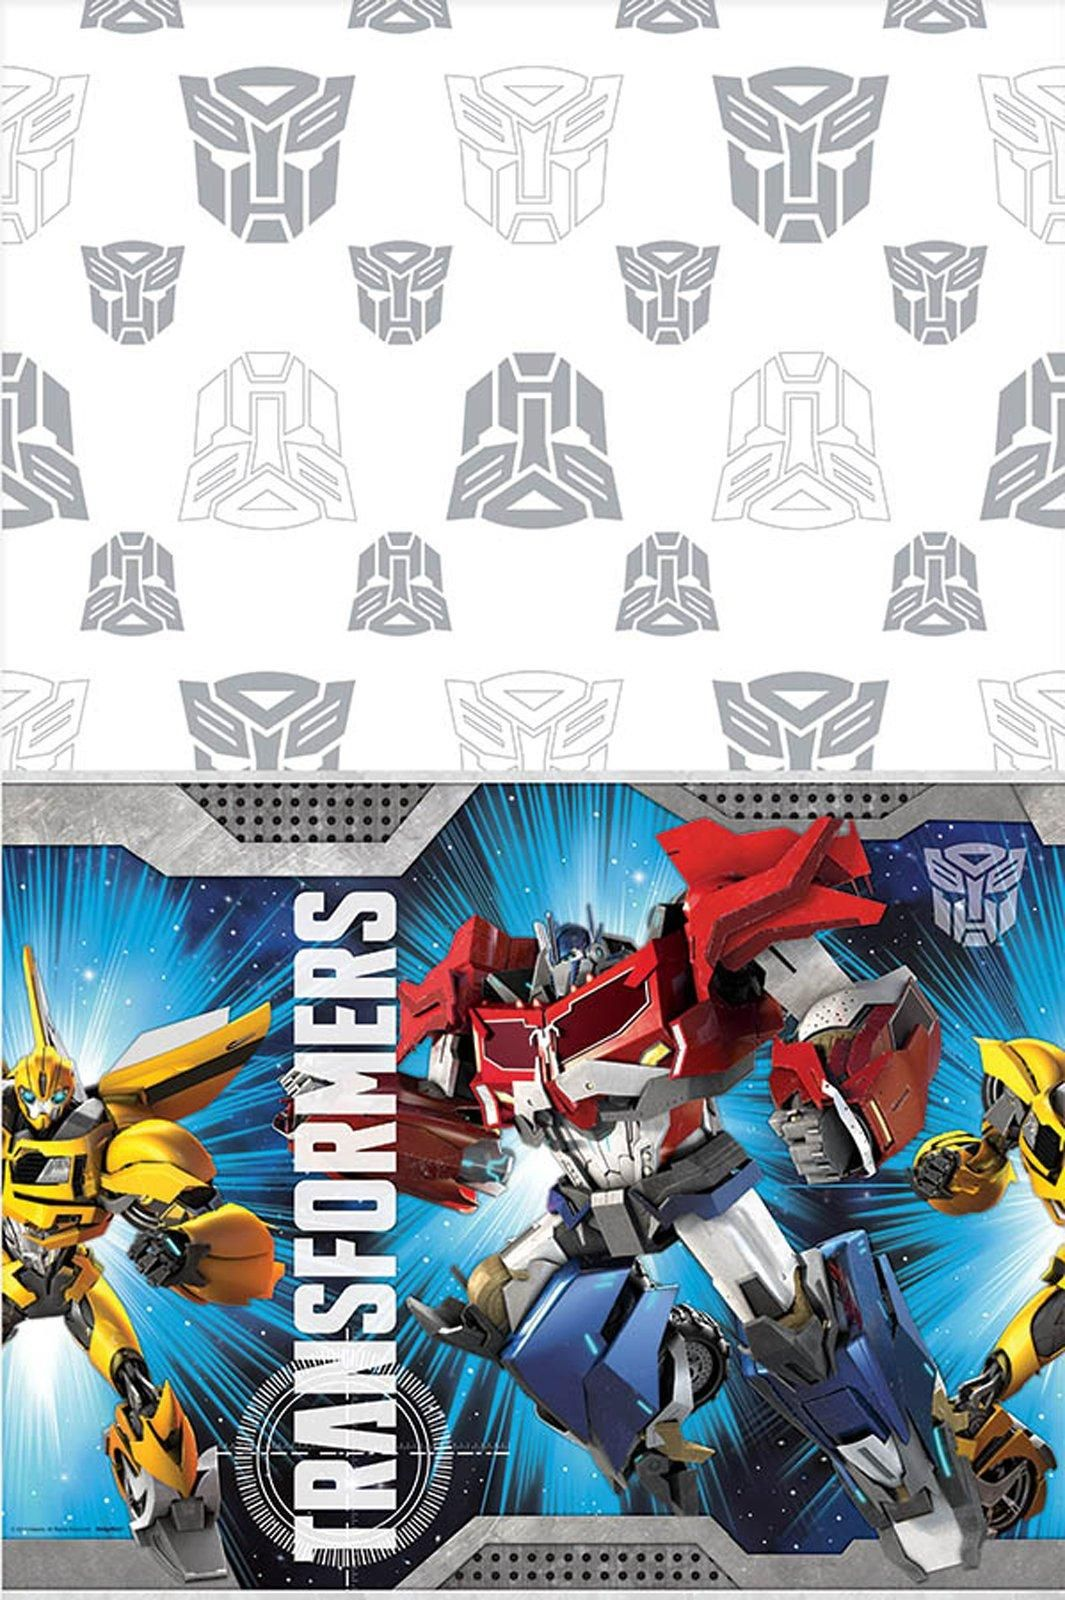 Cool party supplies transformers printed tablecover just added